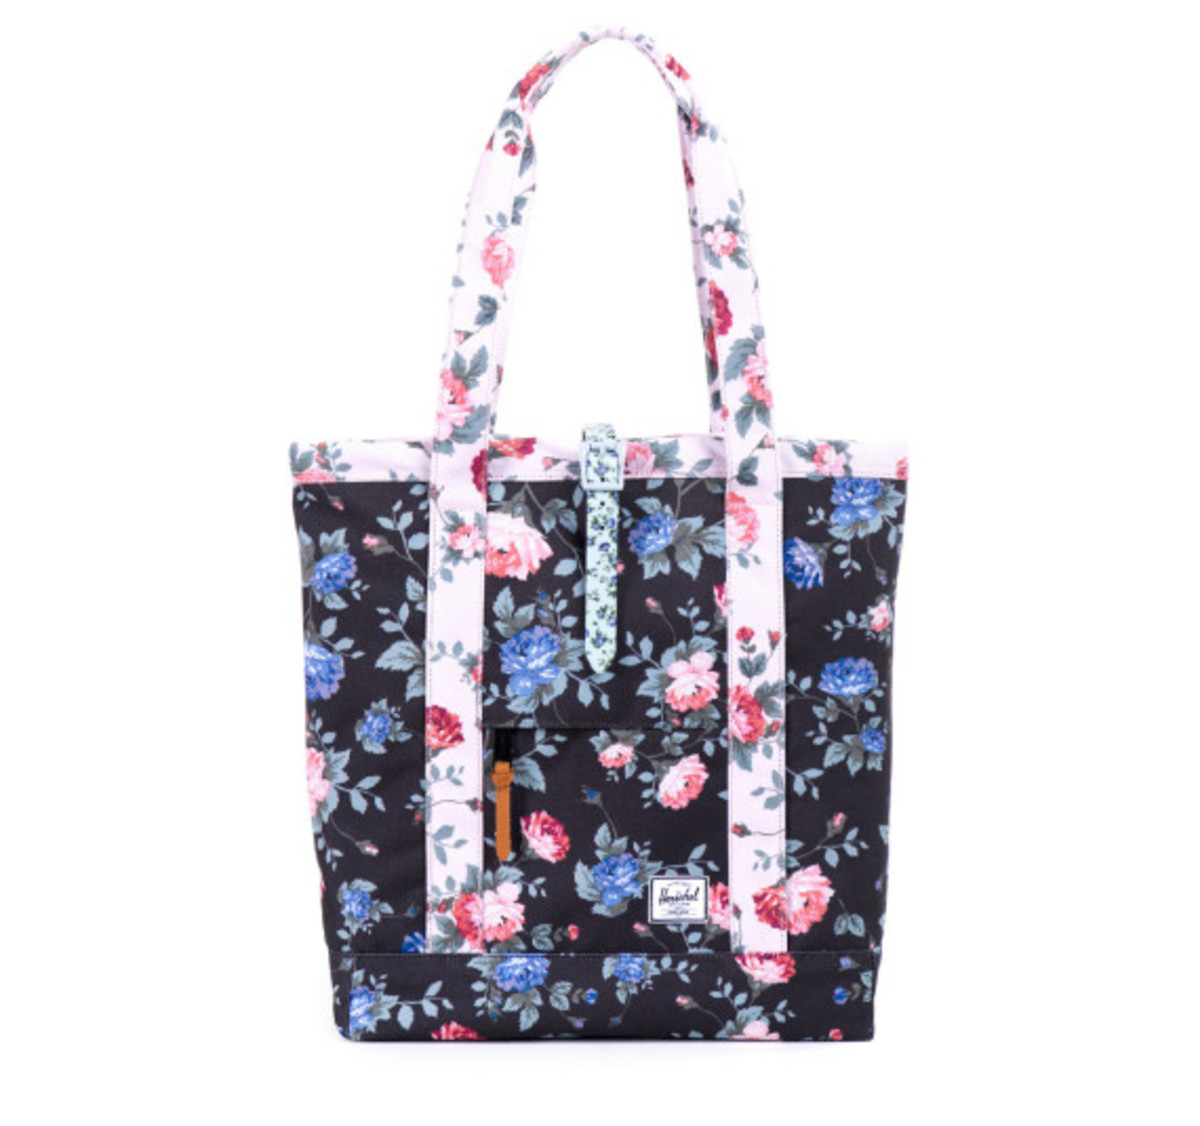 herschel-supply-co-fine-china-print-collection-10